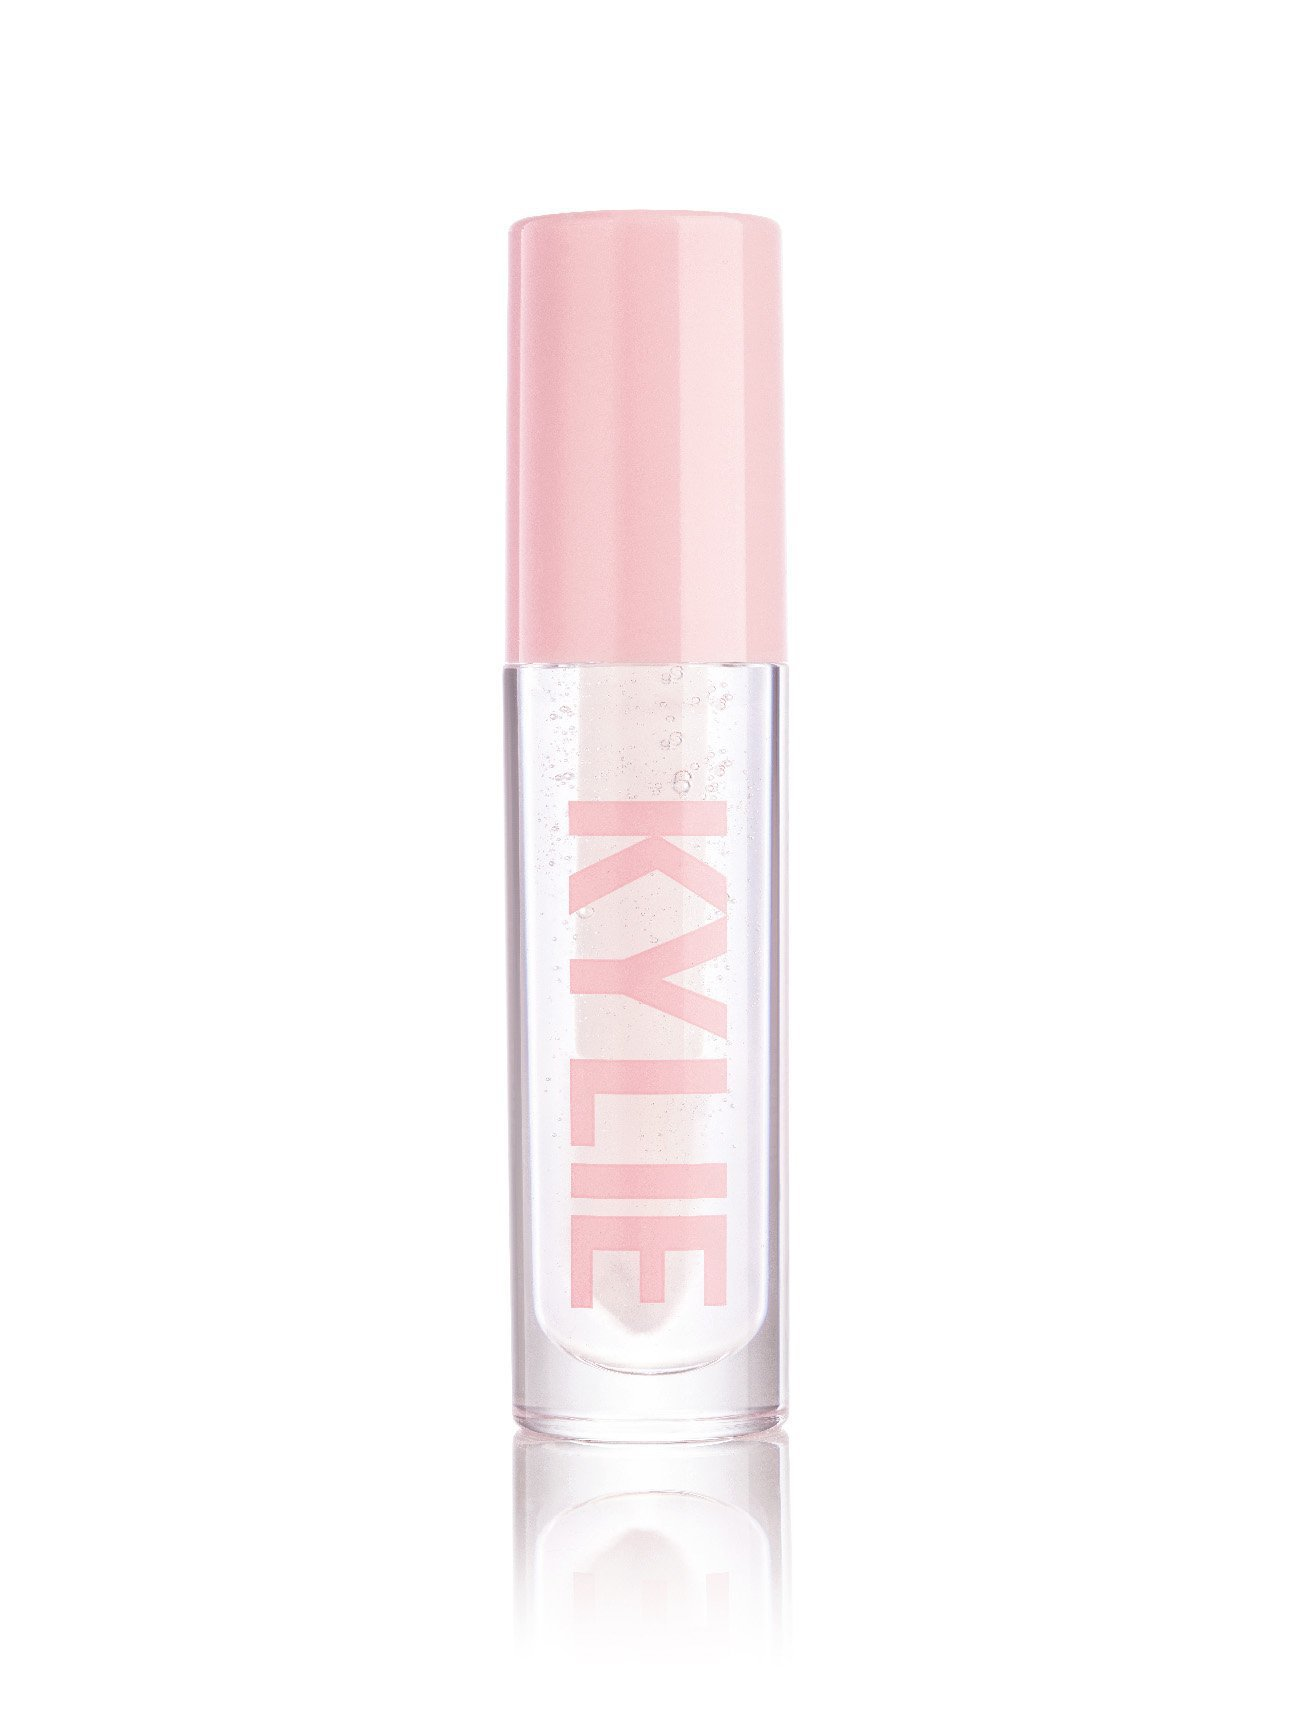 Crystal   High Gloss   Kylie Cosmetics by Kylie Jenner